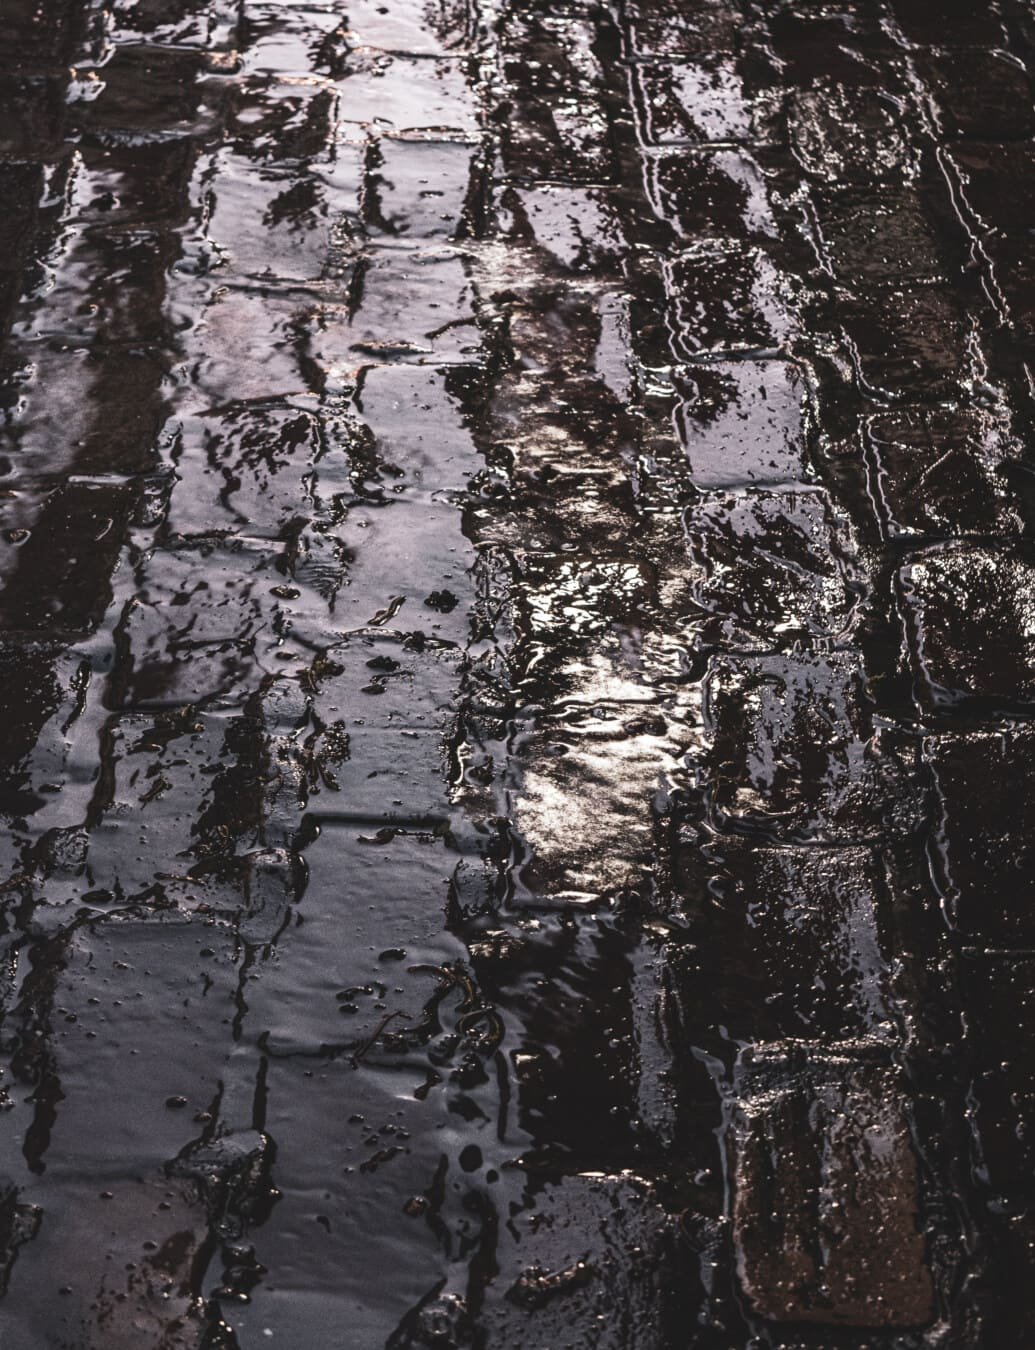 water, alley, rain, old, wet, bricks, decay, dirty, rough, texture